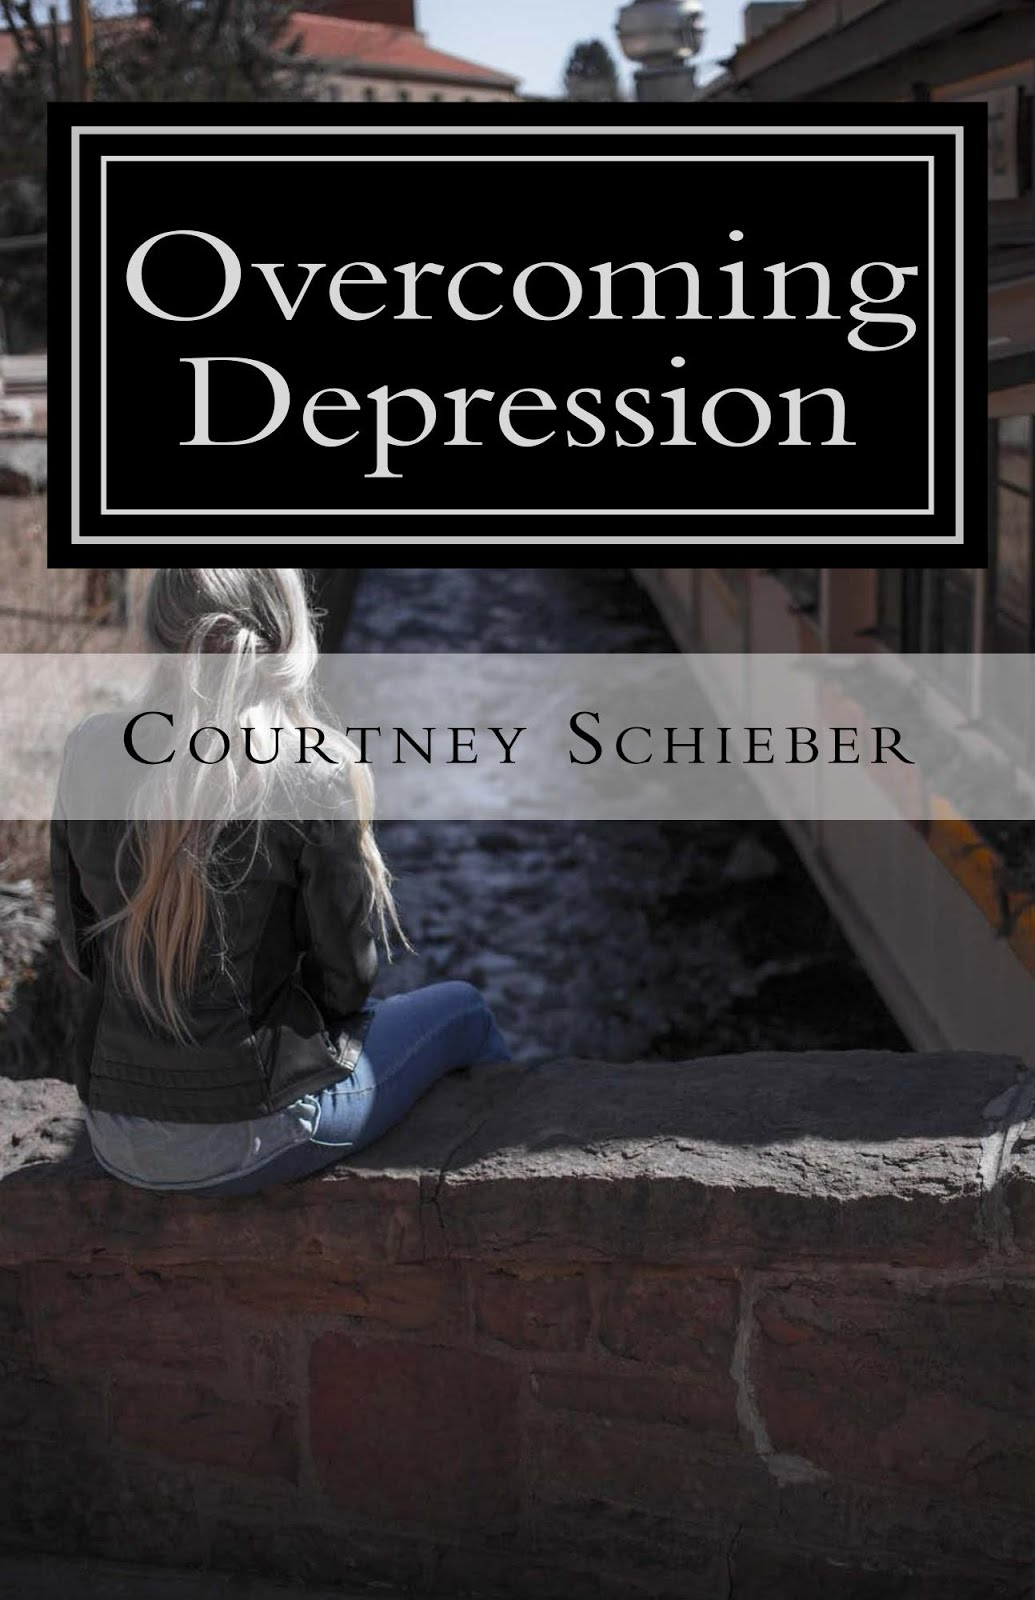 Click on image below to order Courtney's newest book